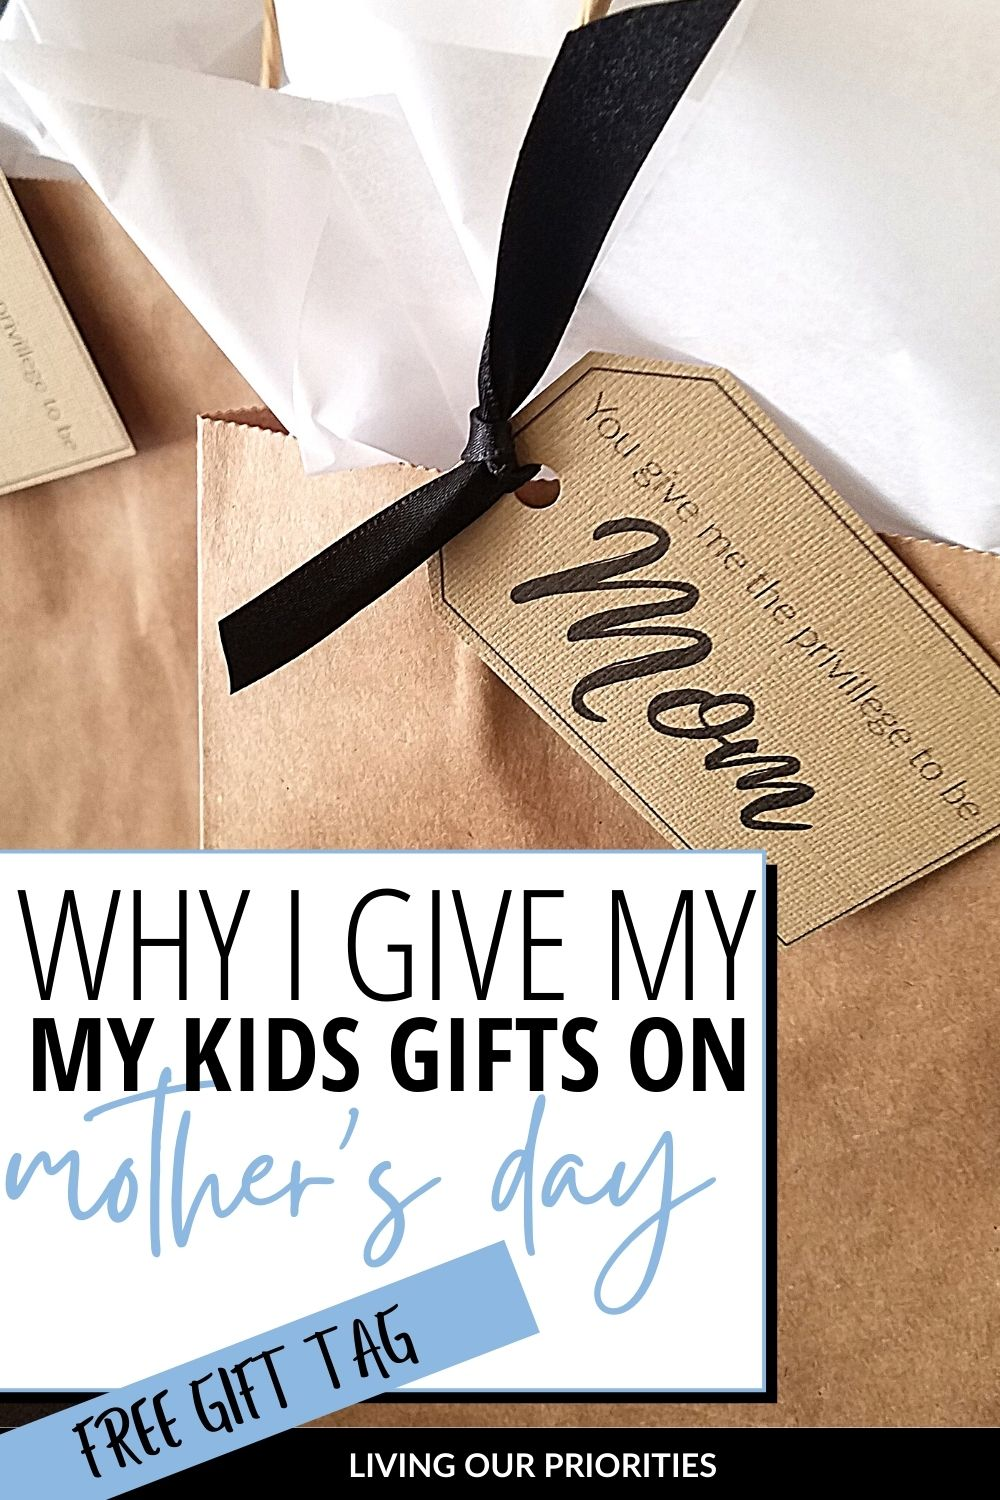 My greatest accomplishment in this life is raising the children God has given me. So on Mother's Day I actually buy them gifts. As it is only because of them, that I have the privilege to be called mom! #Mother's Day #Printable